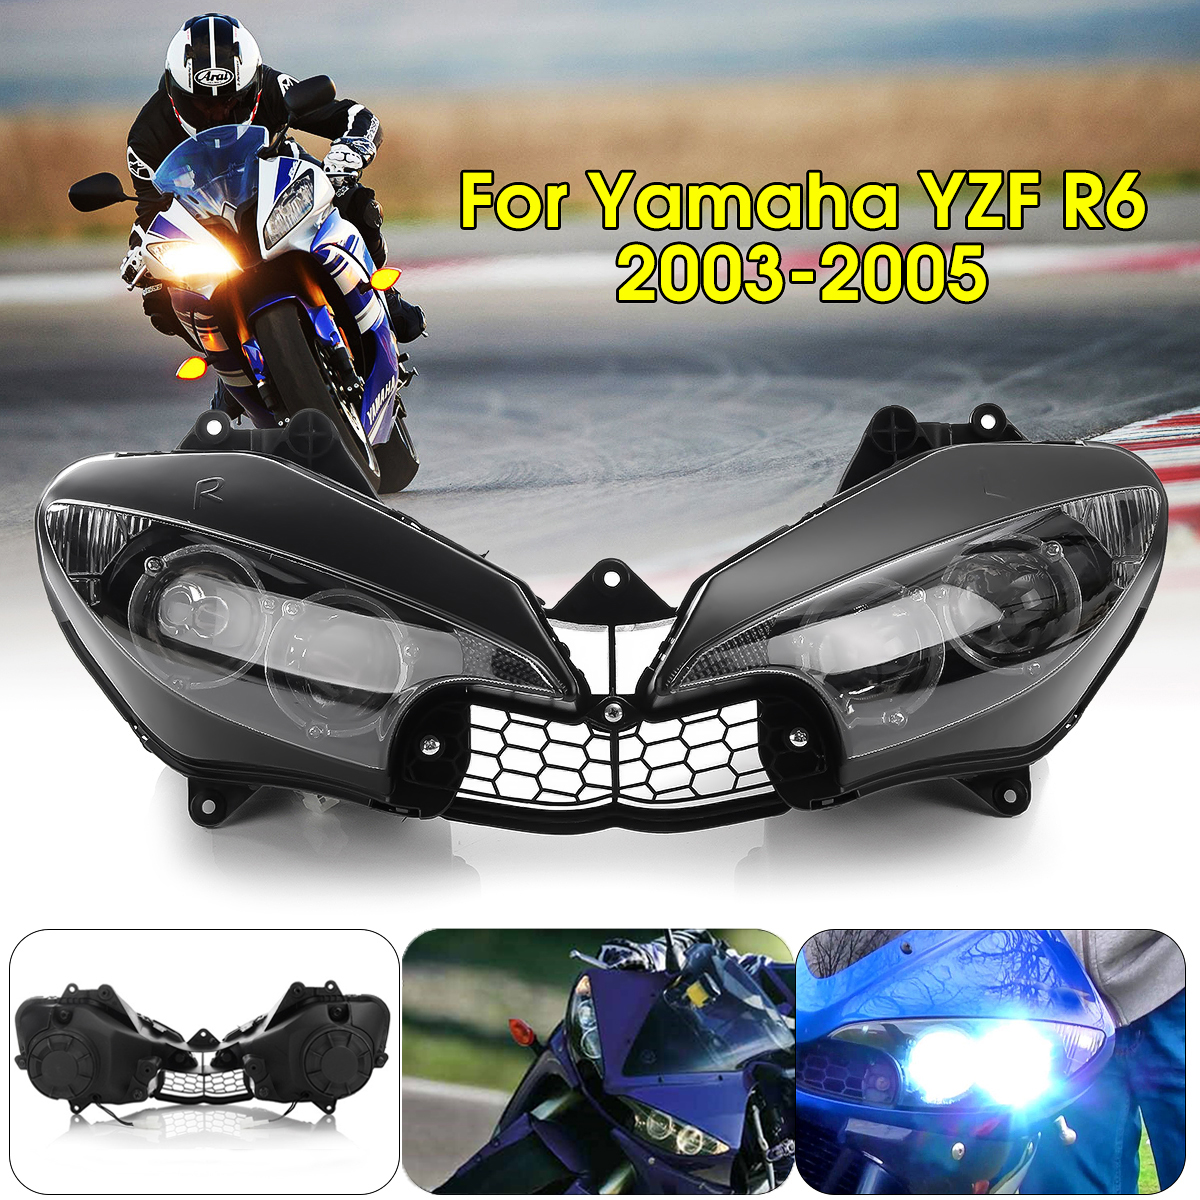 Yamaha YZF-R6 600 2005 Headlight Replacement Bulb